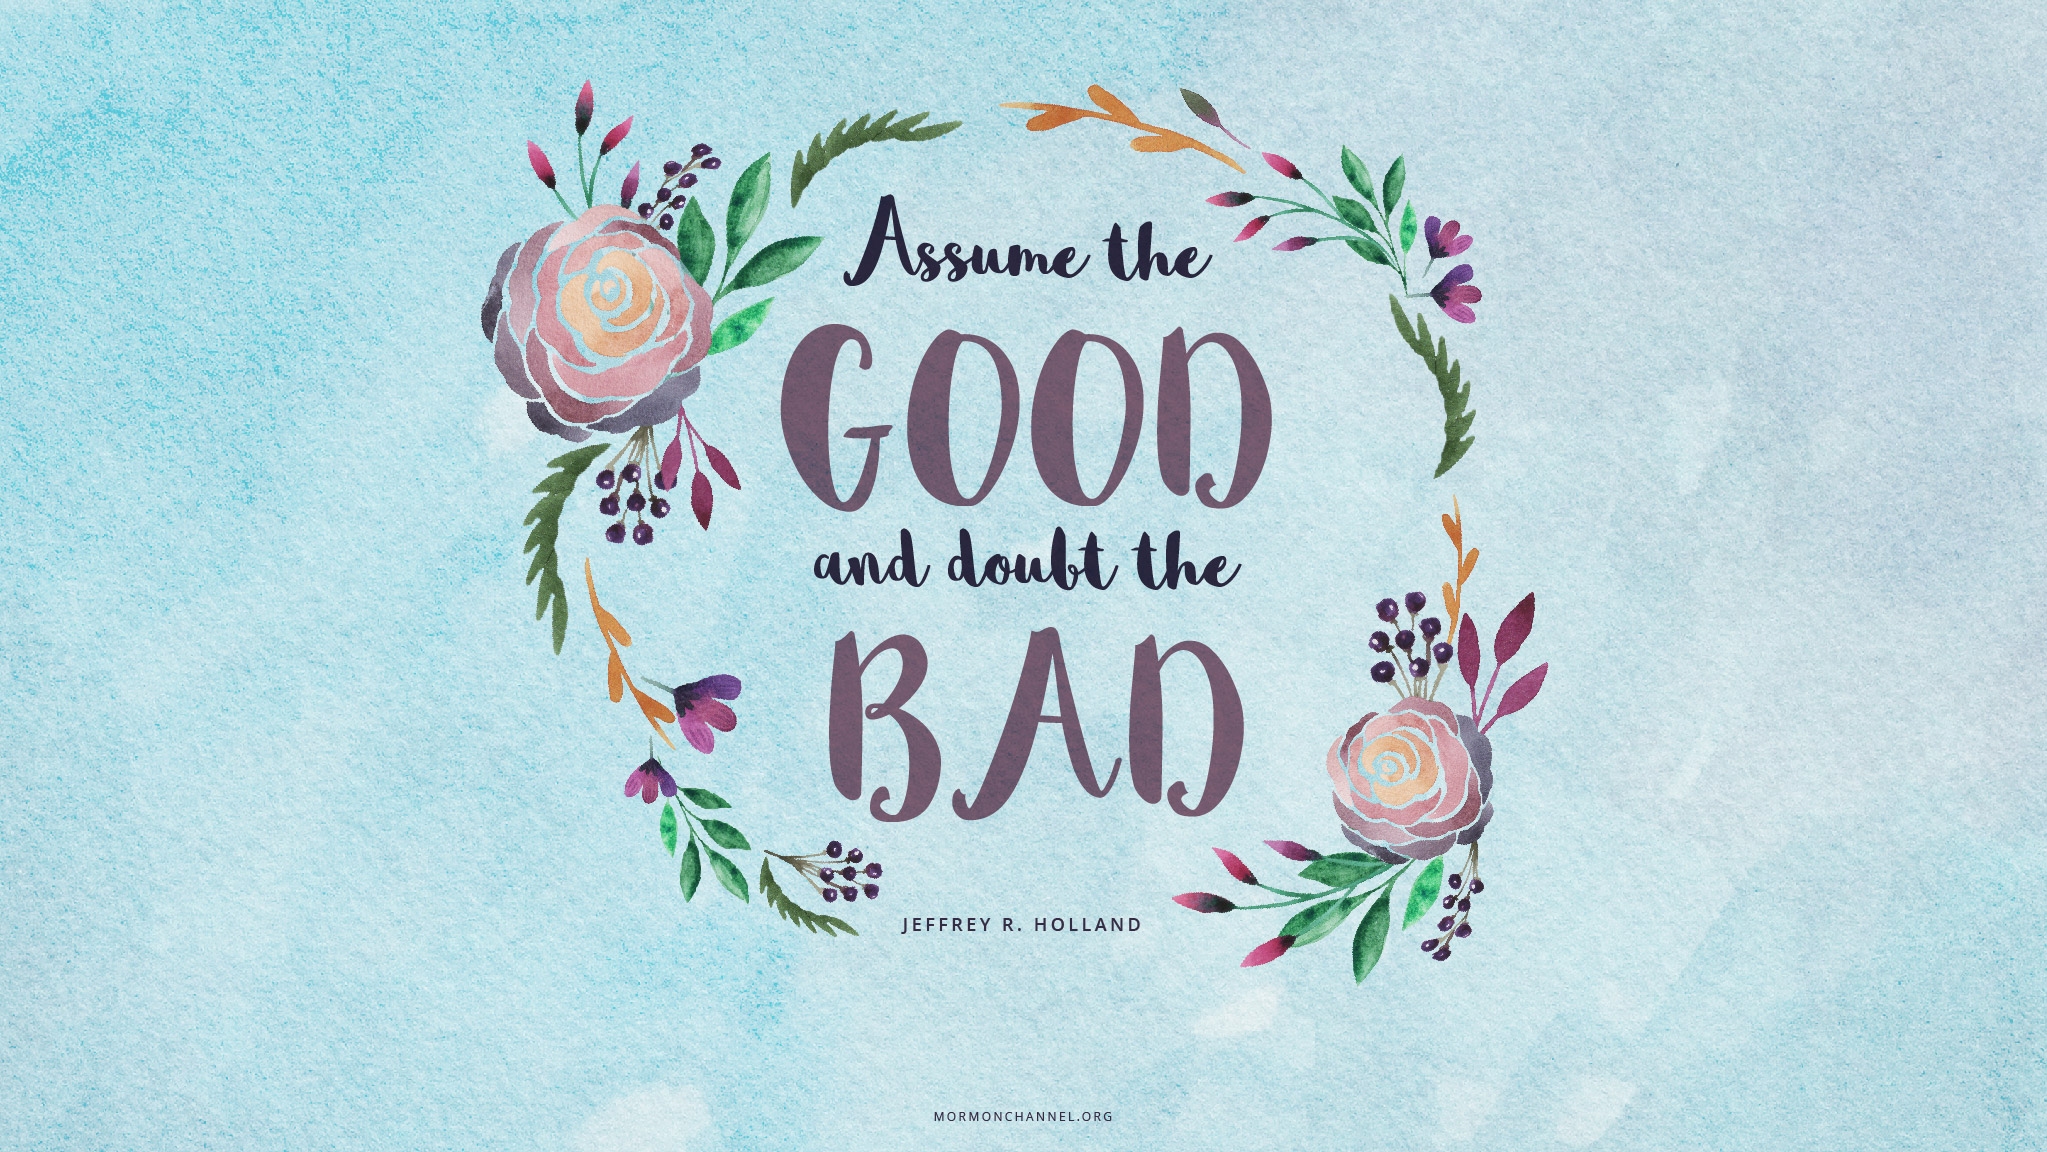 Sayings Daily Quote Assume The Good Mormon Channel Daily Quote Assume The Good Mormon Channel